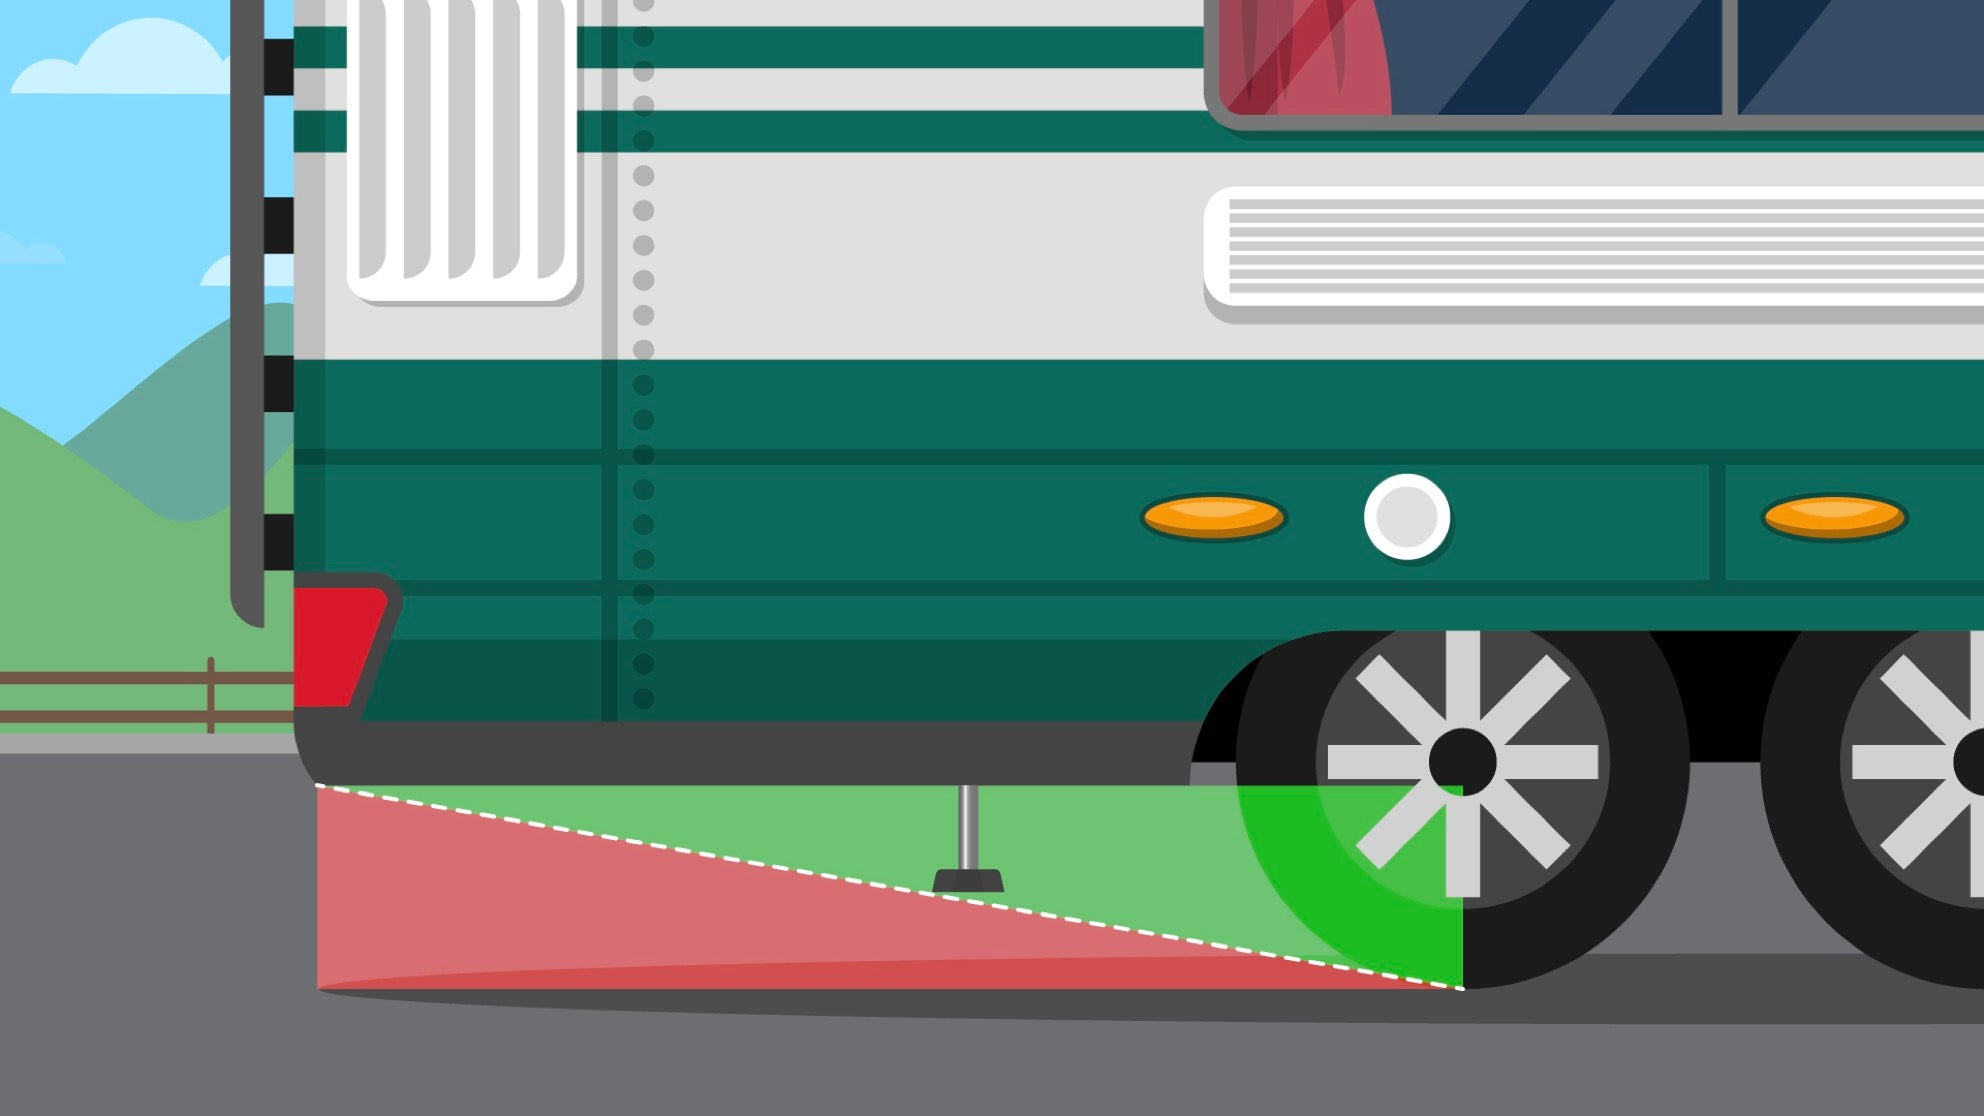 Know your departure angle and ensure your jacks and SnapPads are within the green zone.